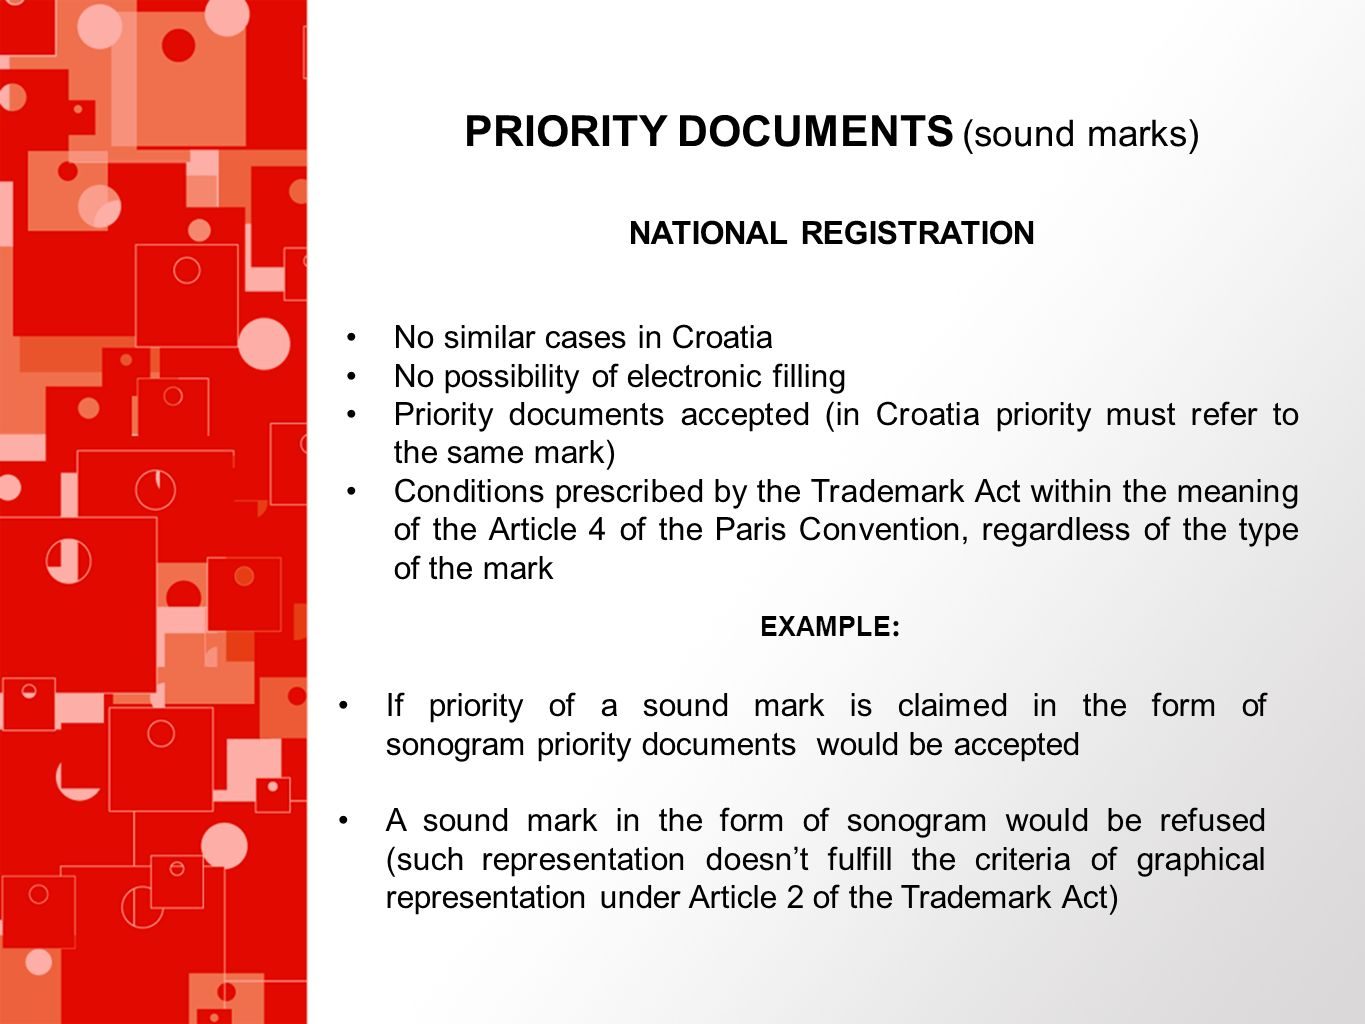 PRIORITY DOCUMENTS (sound marks) NATIONAL REGISTRATION No similar cases in Croatia No possibility of electronic filling Priority documents accepted (in Croatia priority must refer to the same mark) Conditions prescribed by the Trademark Act within the meaning of the Article 4 of the Paris Convention, regardless of the type of the mark EXAMPLE : If priority of a sound mark is claimed in the form of sonogram priority documents would be accepted A sound mark in the form of sonogram would be refused (such representation doesnt fulfill the criteria of graphical representation under Article 2 of the Trademark Act)